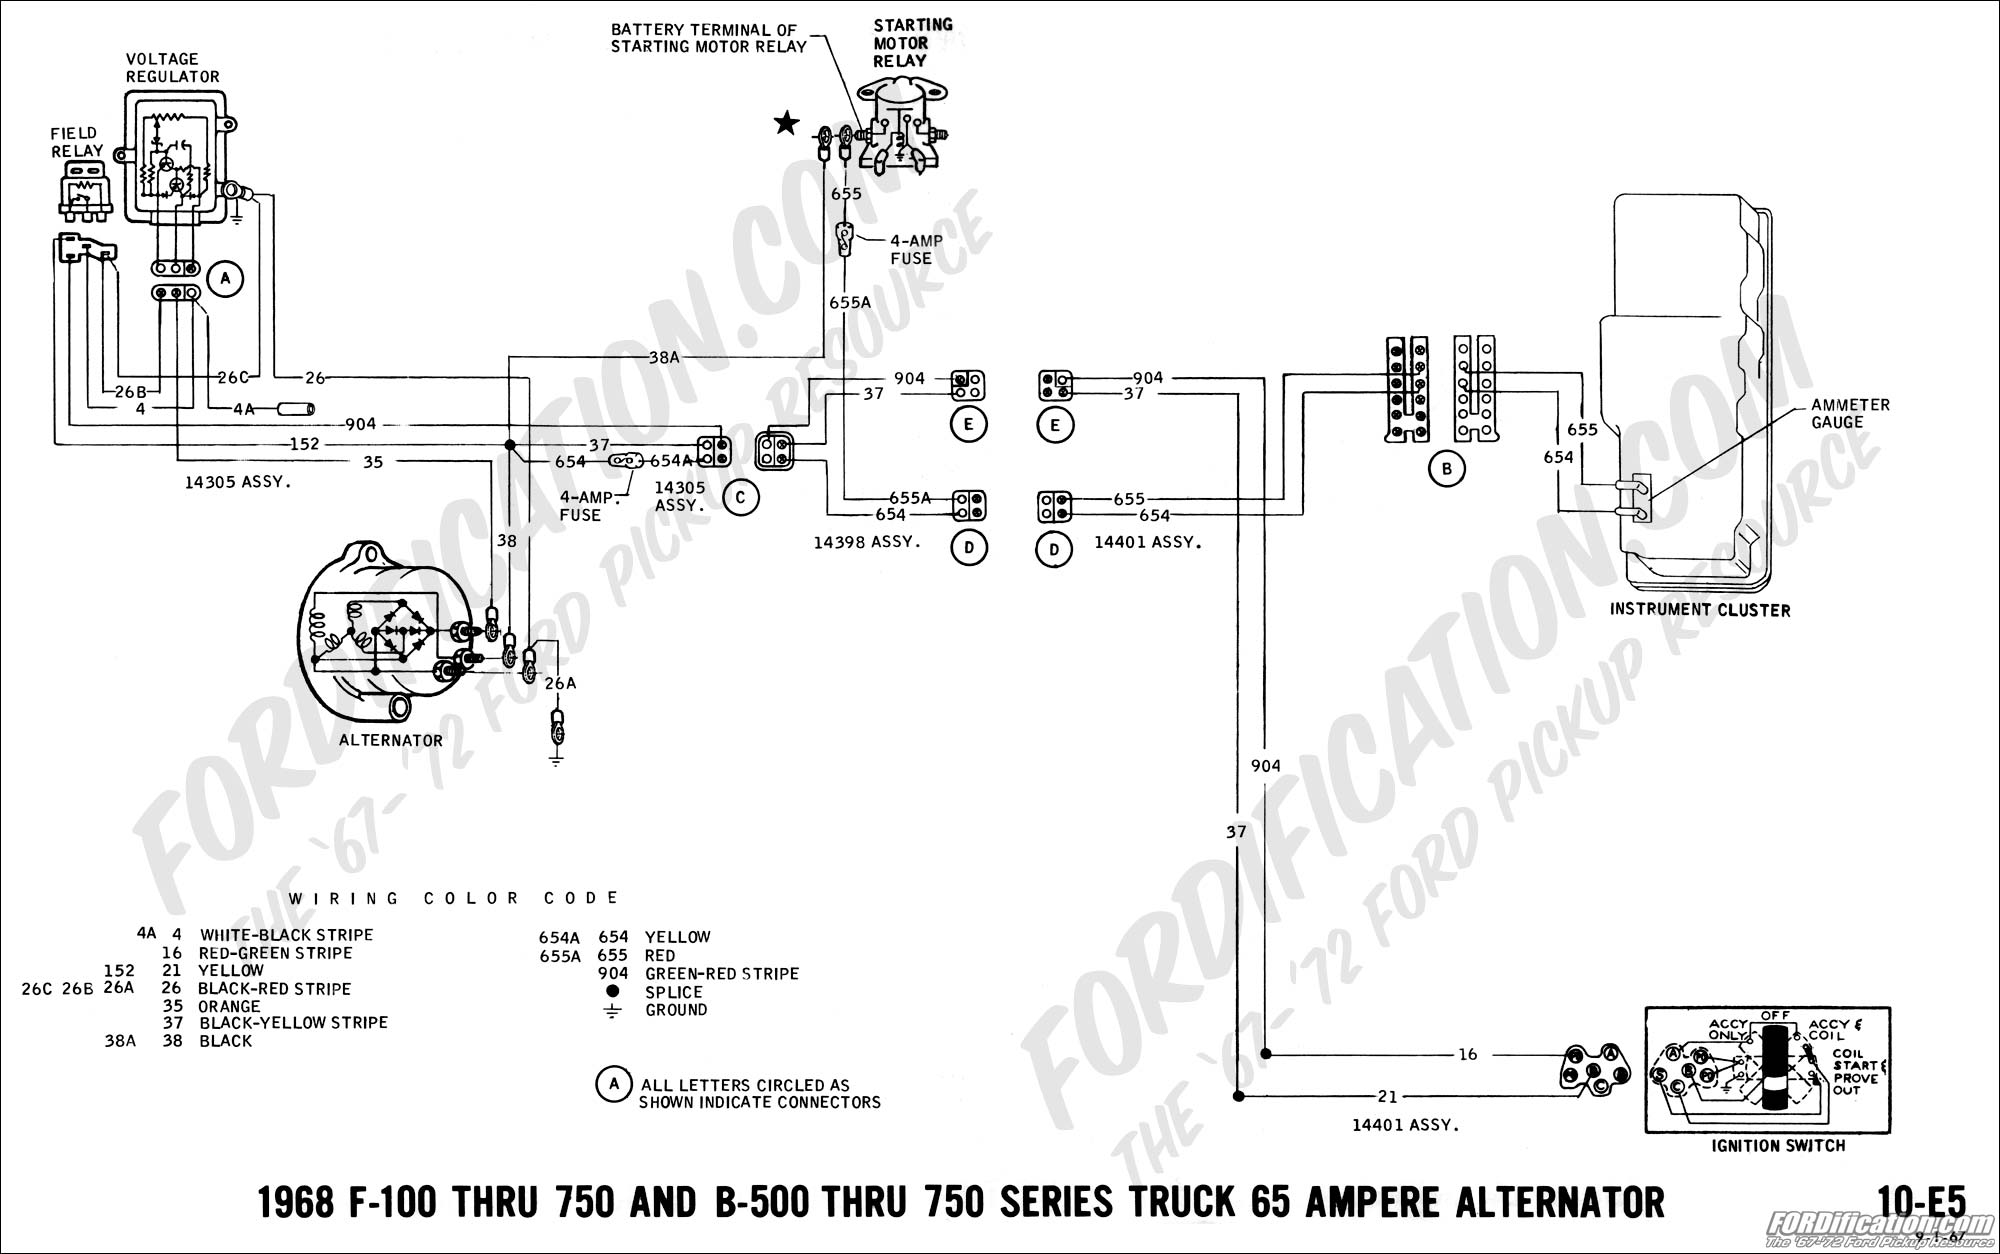 68 07 ford truck technical drawings and schematics section h wiring 68 beetle wiring diagram at honlapkeszites.co